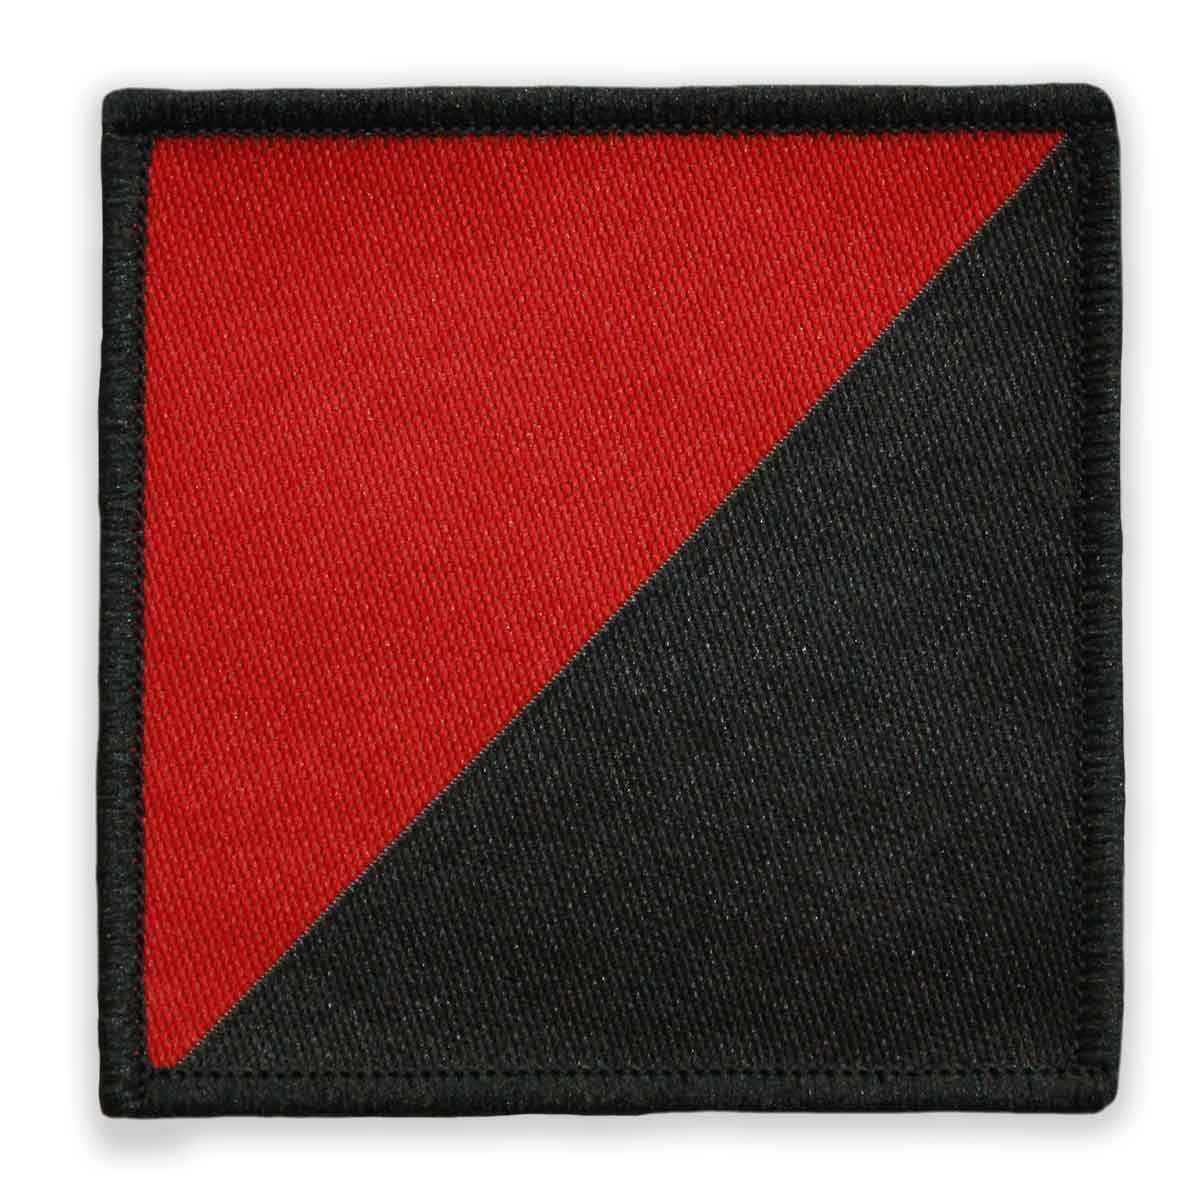 13 Support Regt TRF Patch | UKMCPro